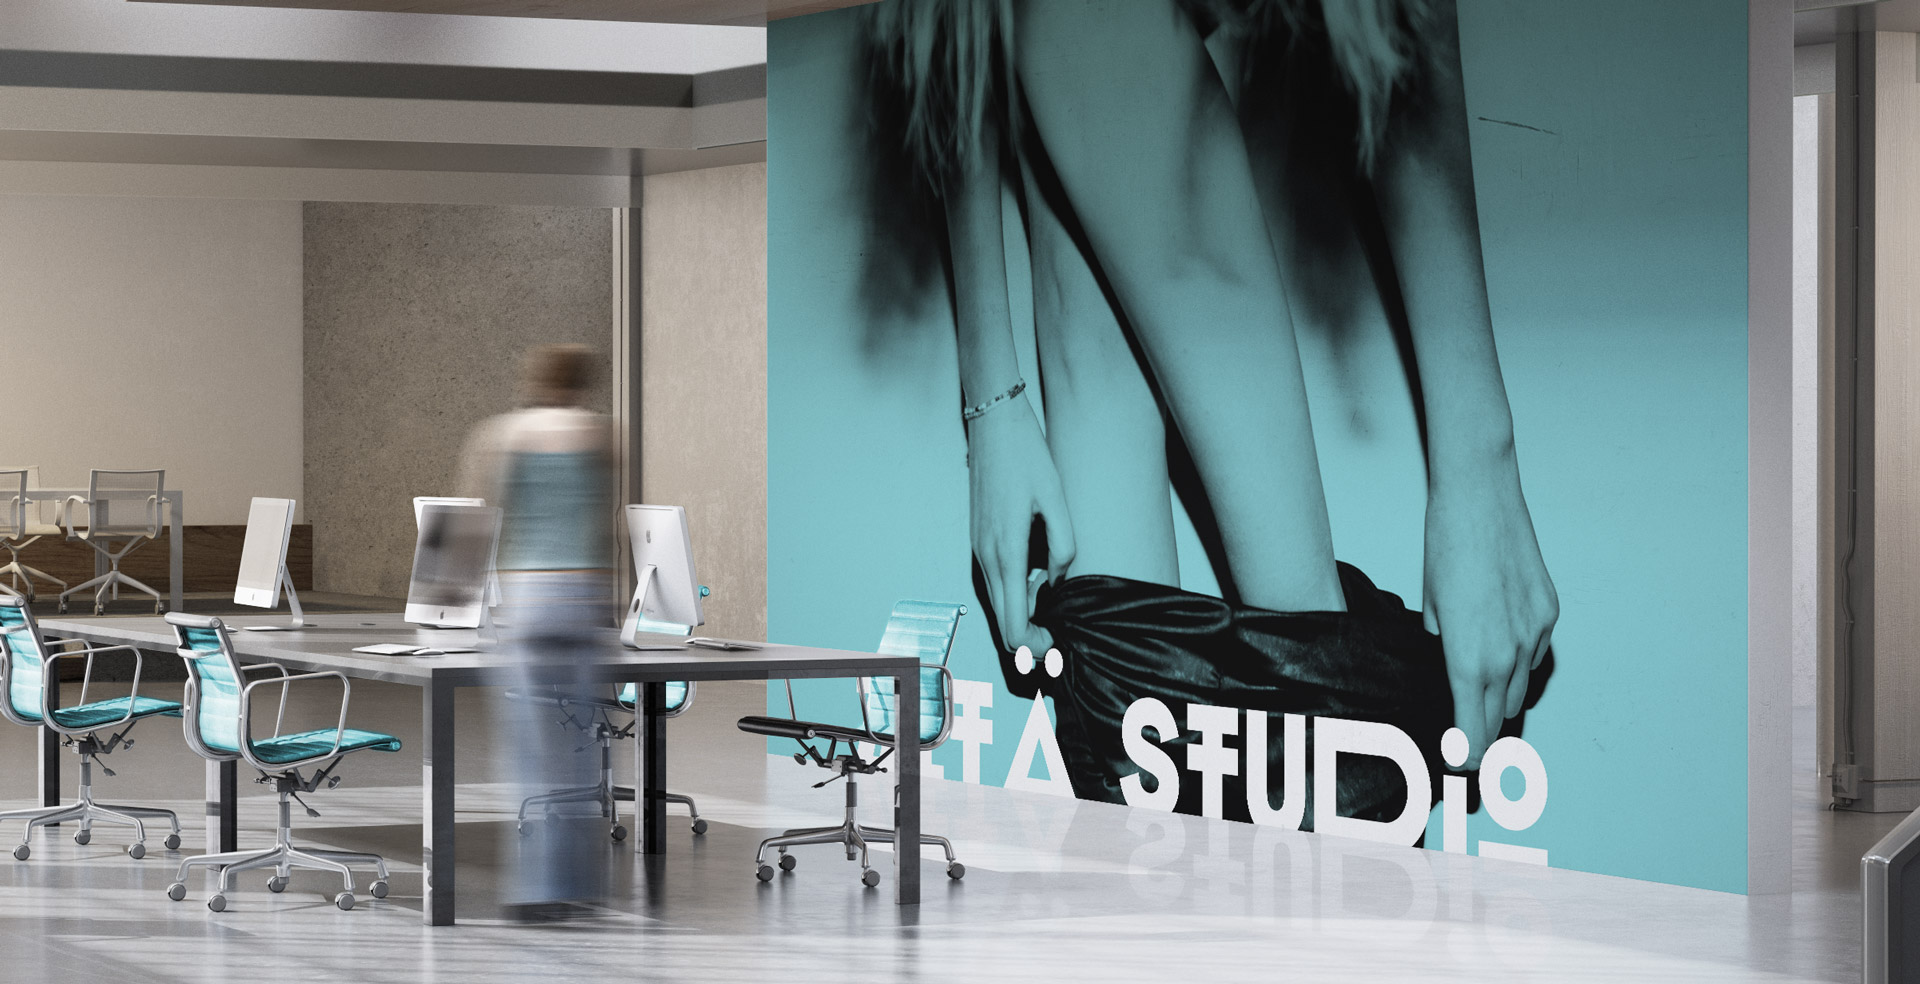 zeta-studio-office-2